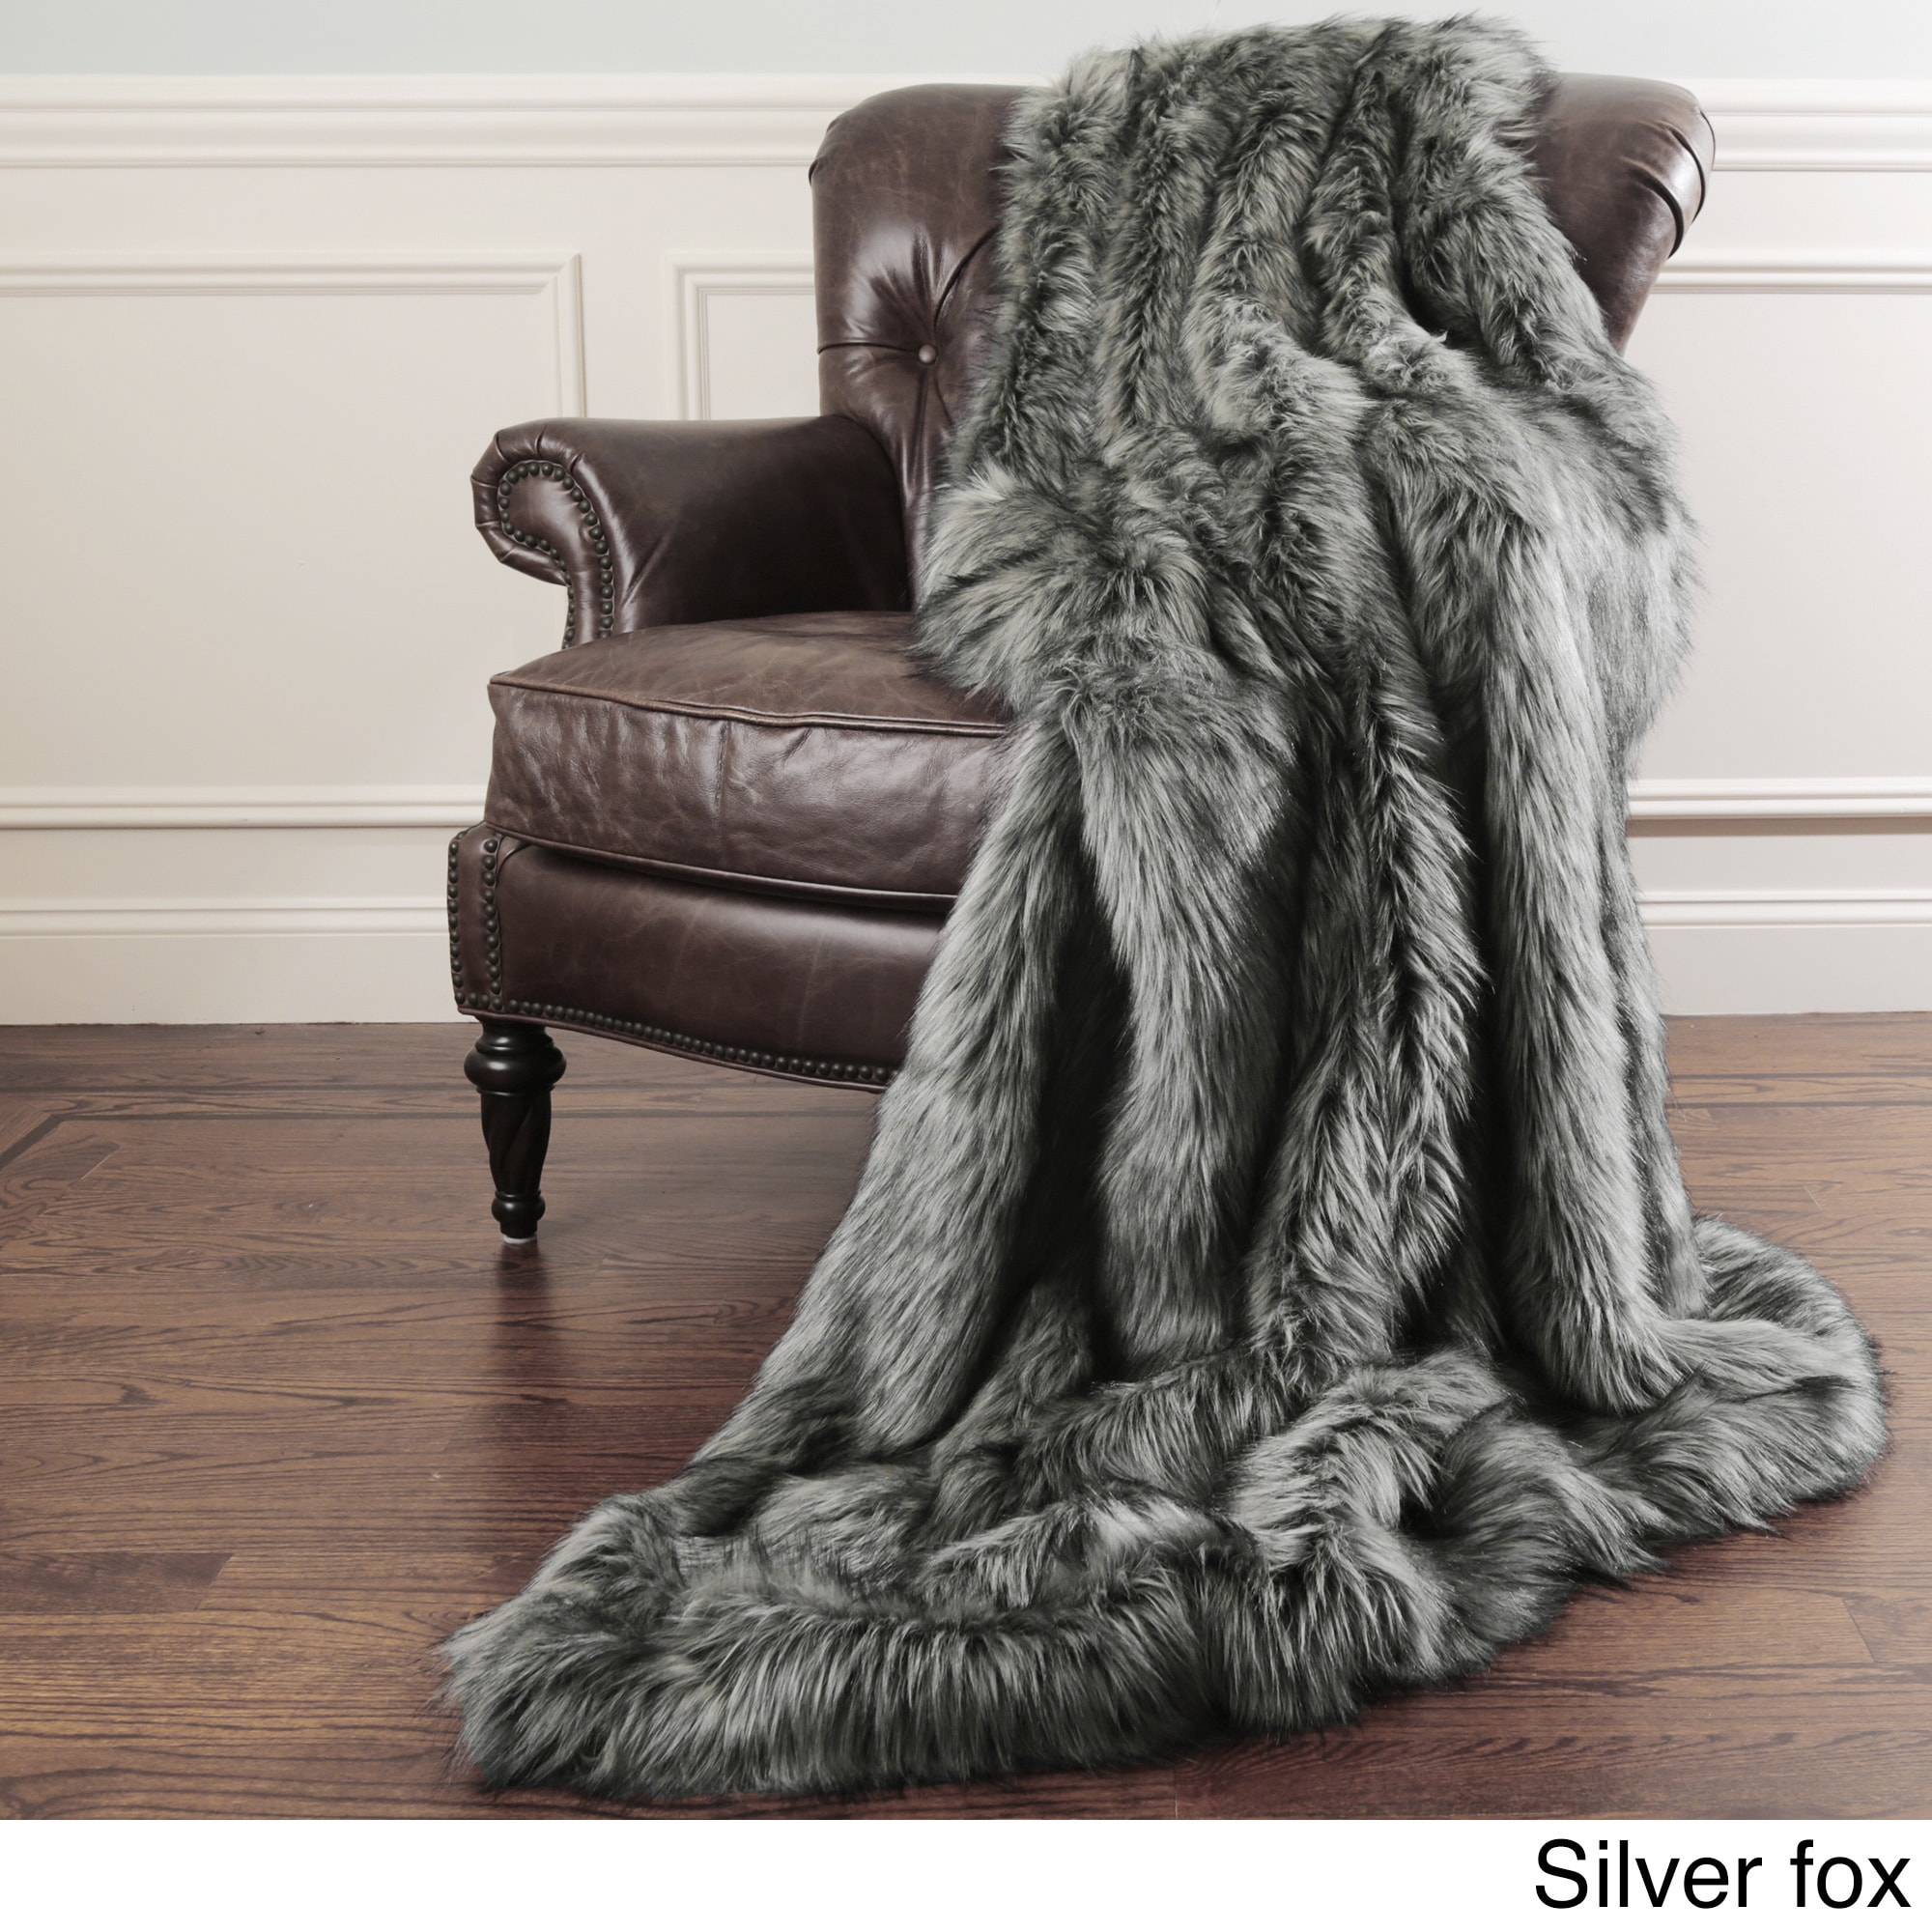 Throw Blankets Aurora Home Faux Fur Throw Blankets By Wild Mannered